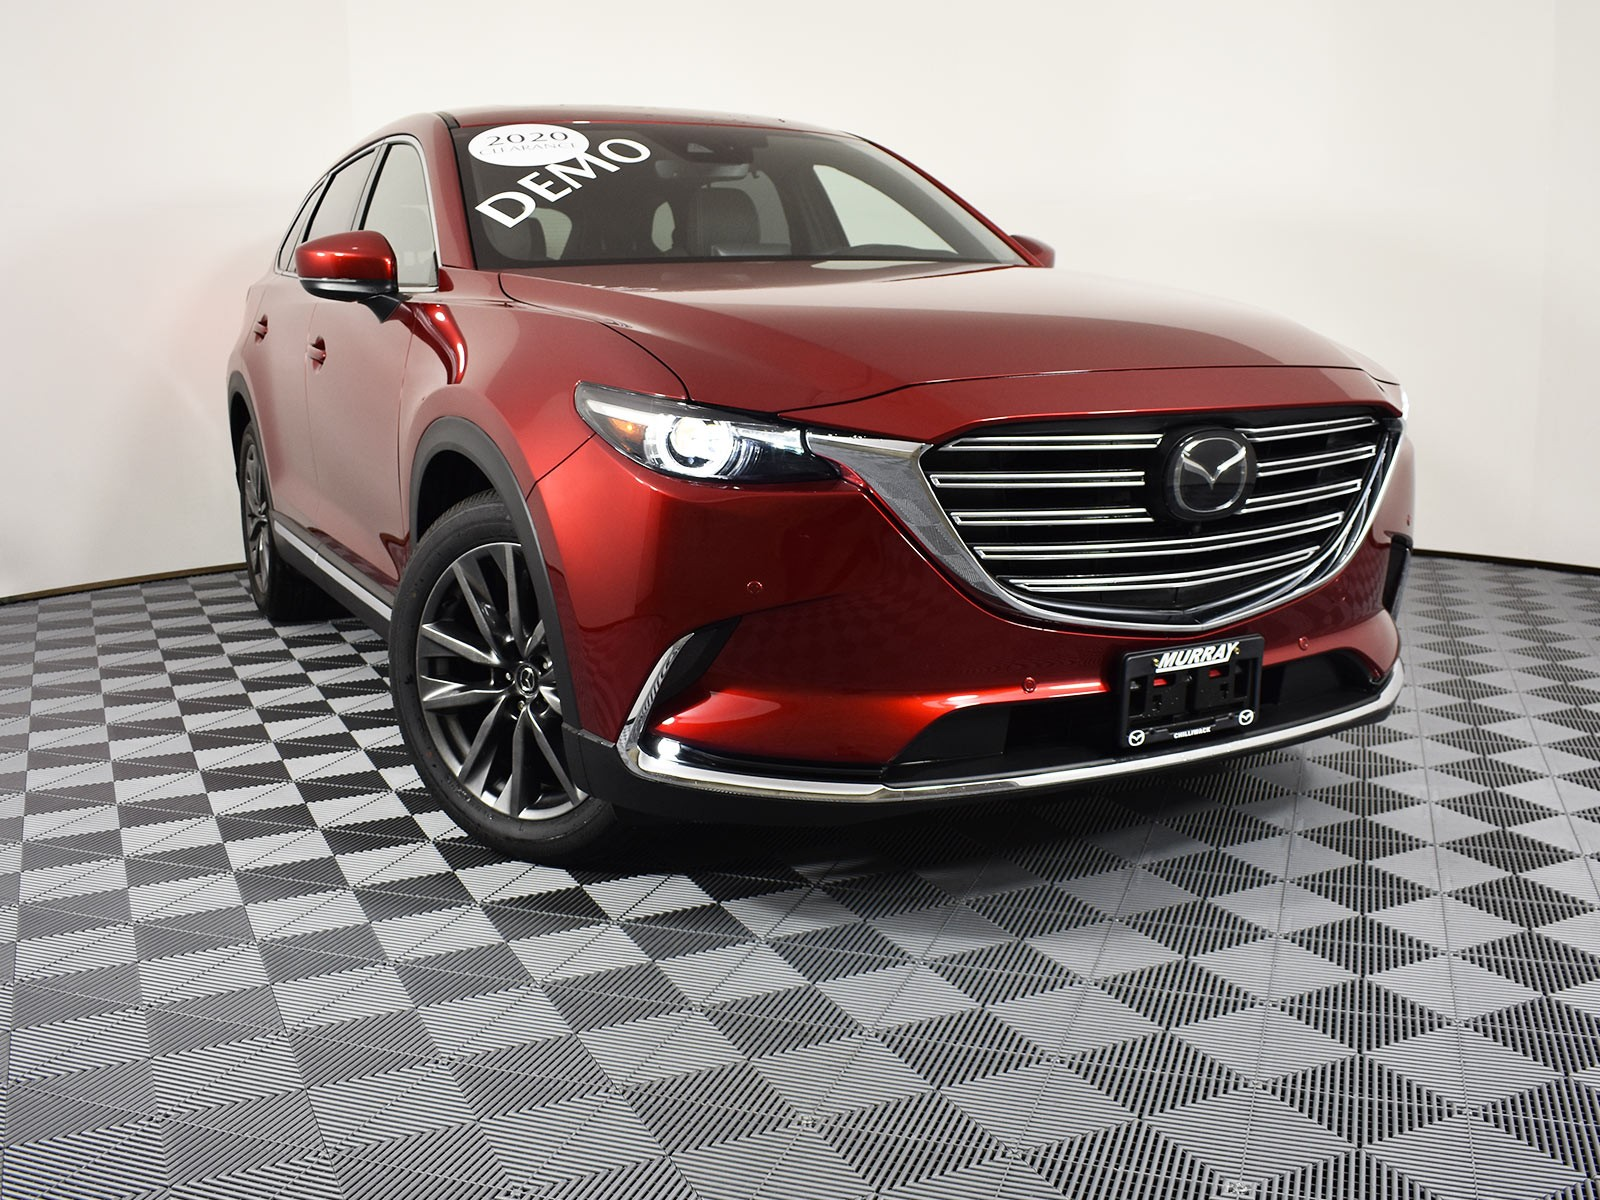 2020 Mazda CX-9 Signature - 5,715km